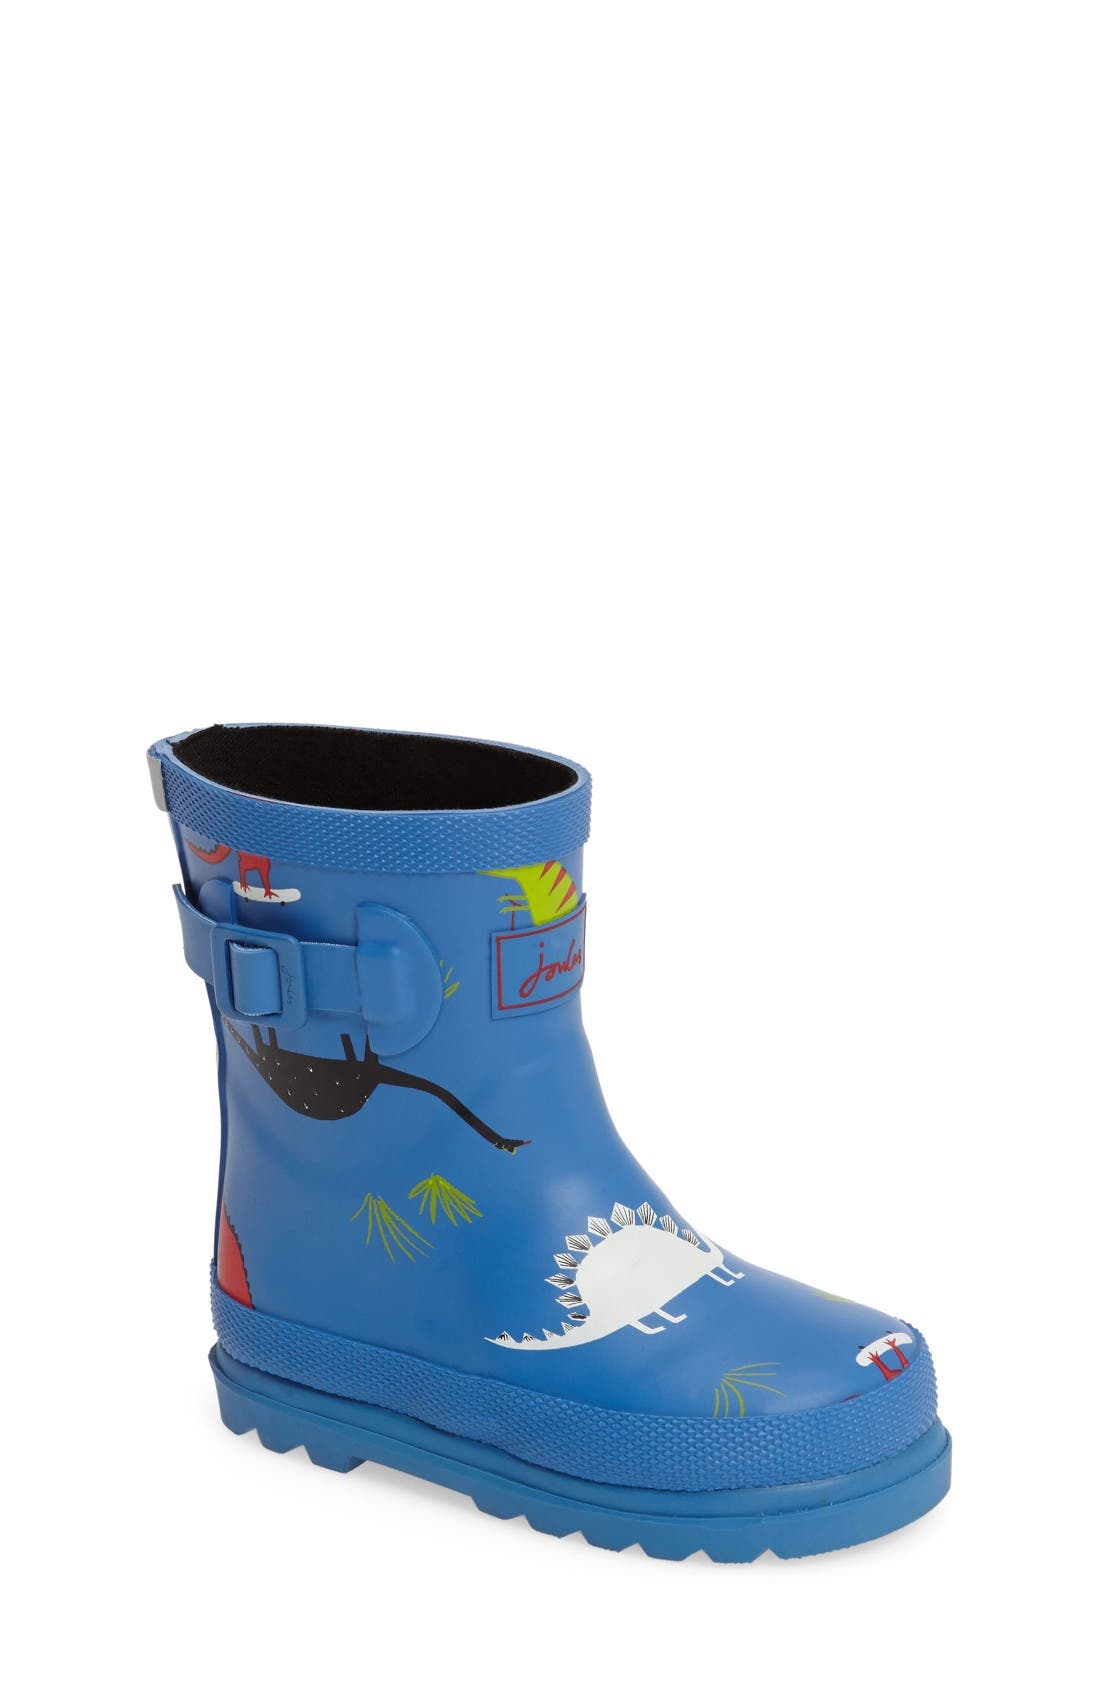 Joules Print Waterproof Rain Boot (Walker & Toddler)